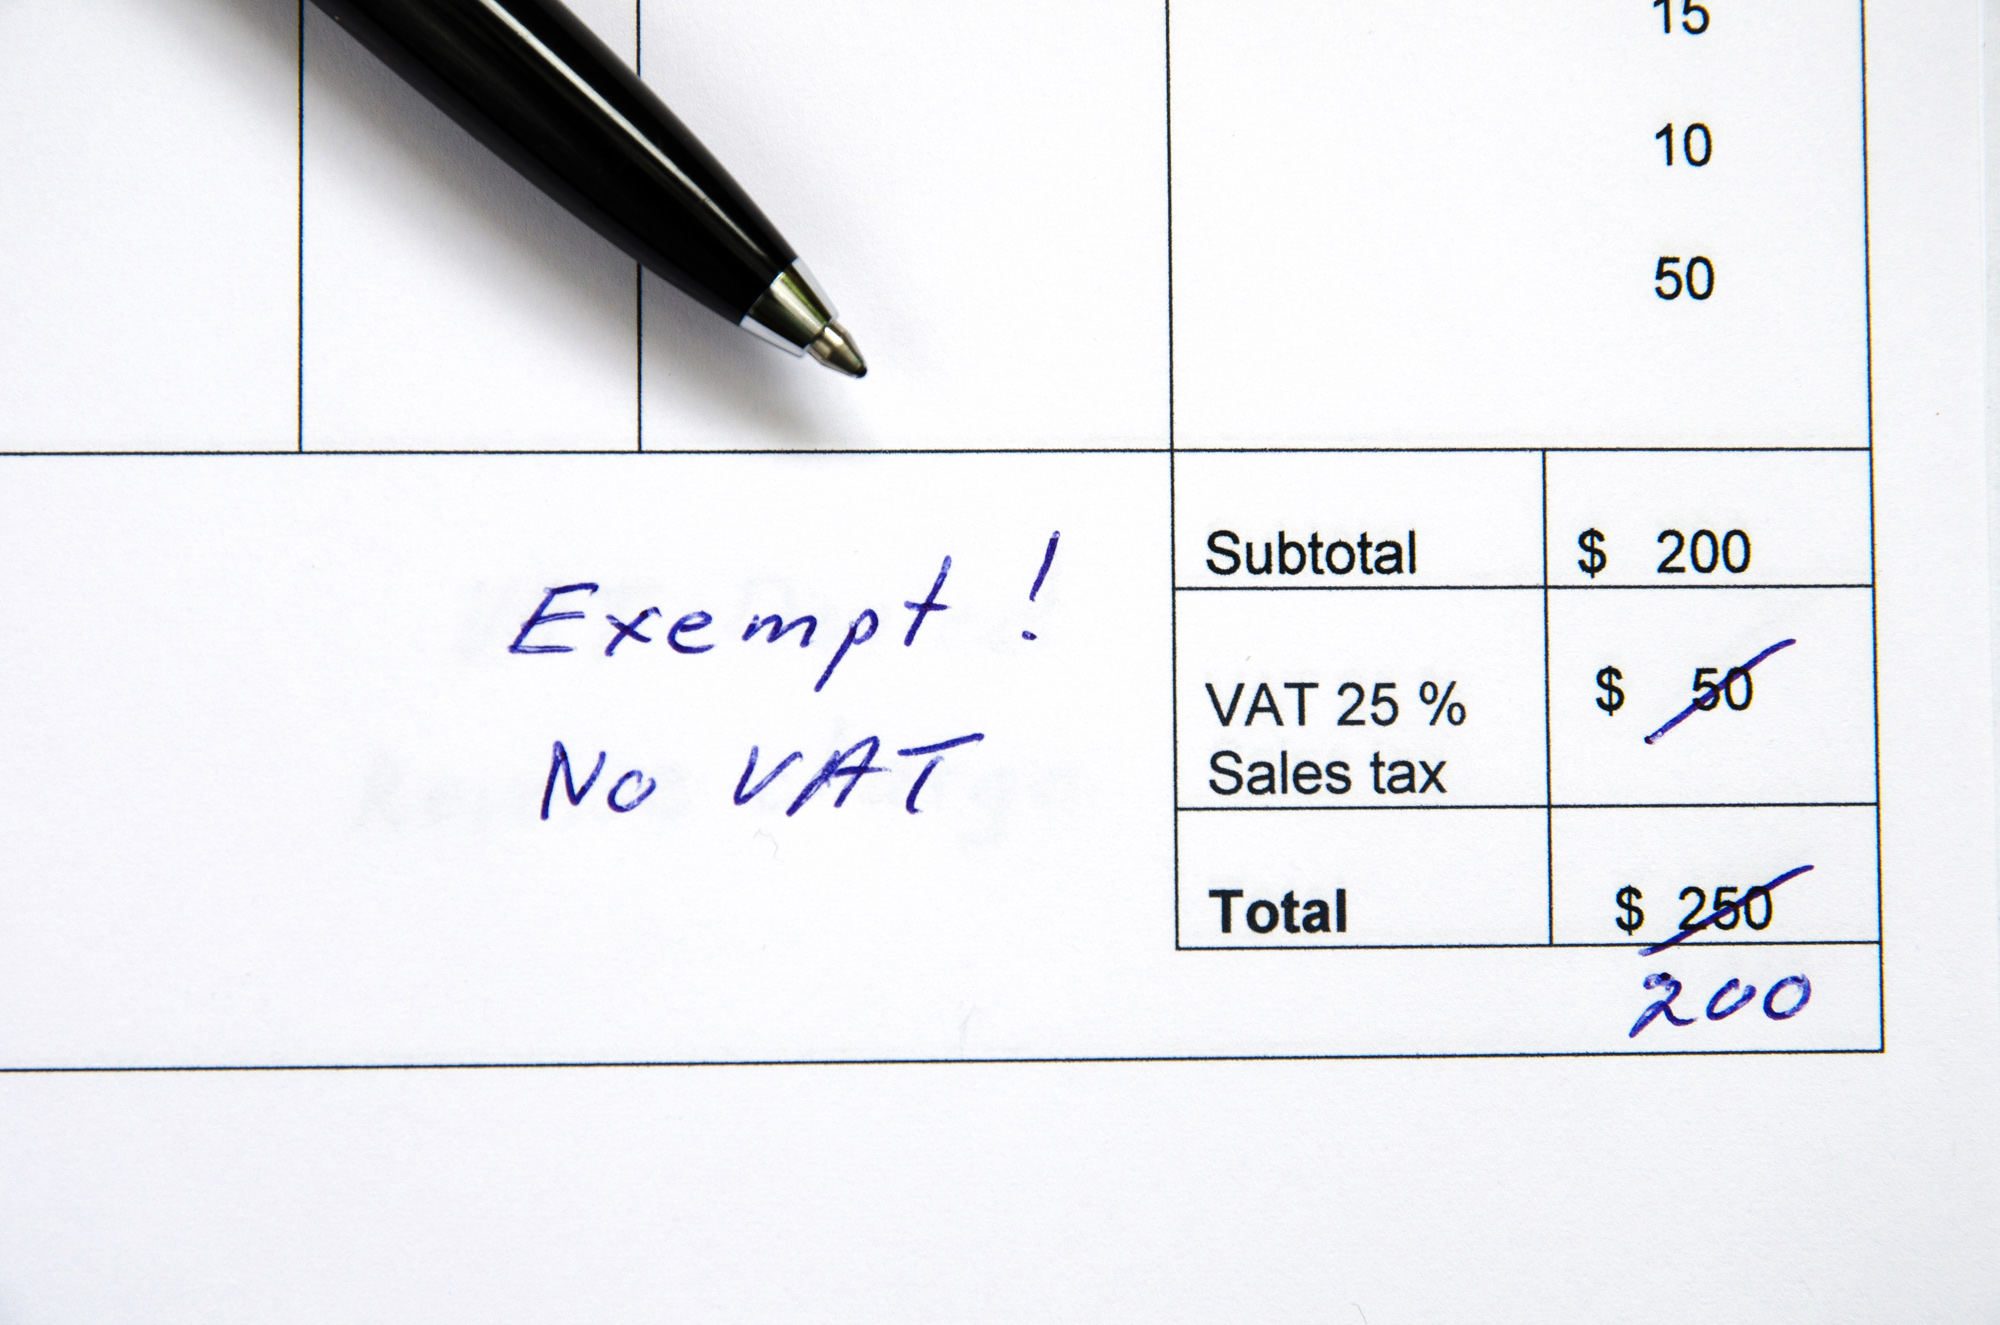 VAT EXEMPTION (OPERATING COSTS)